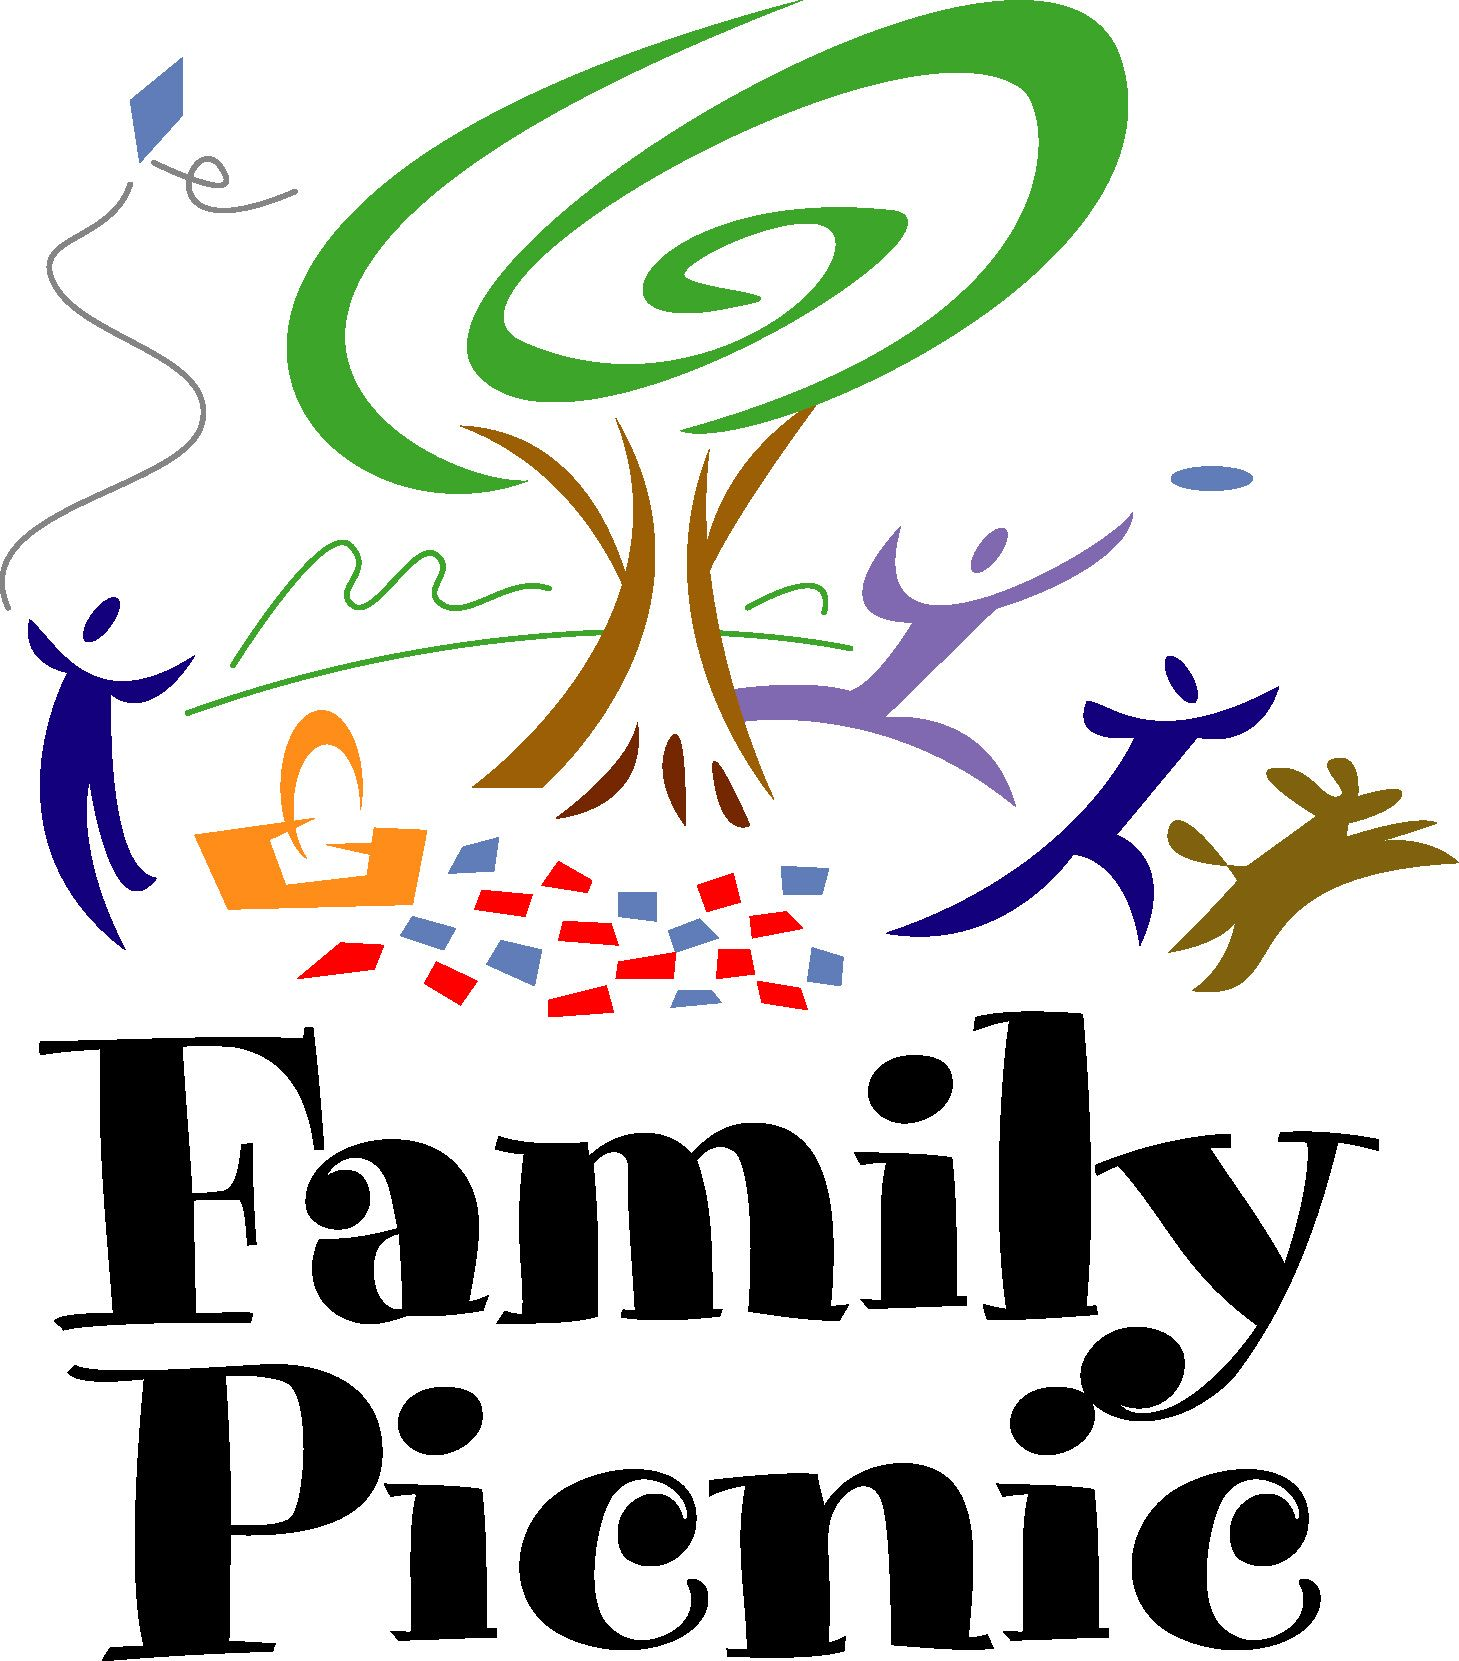 picnic clip art free lettering samples pinterest family picnic rh pinterest com free clipart picnic in the park free clip art picnic reminder